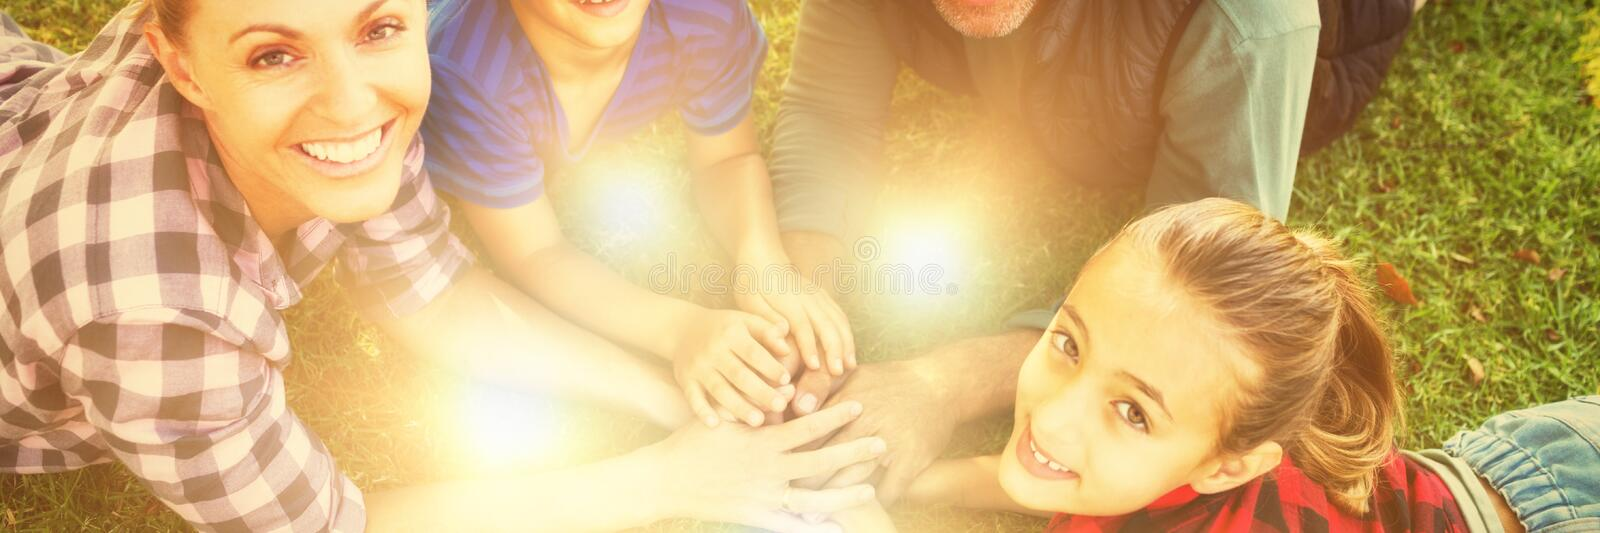 Happy family lying and putting their hands together in park royalty free stock photos